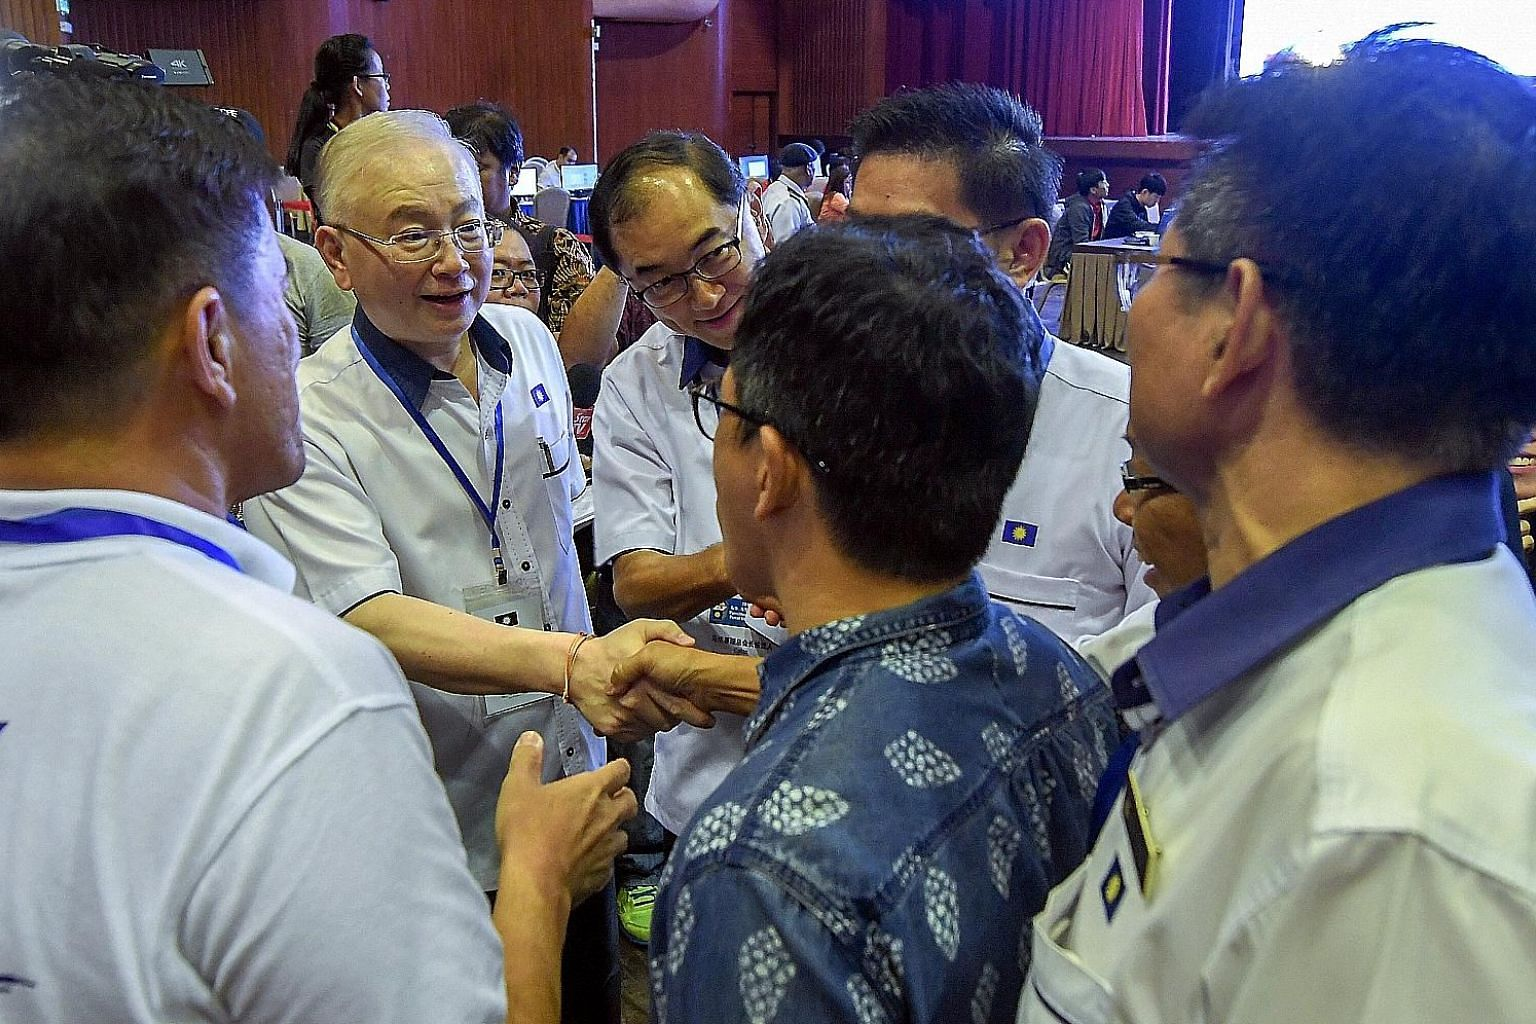 Malaysian Chinese Association president Wee Ka Siong shaking hands with party supporters after the annual assembly on Sunday. Next to him is his deputy Mah Hang Soon. Datuk Seri Wee has called for Barisan Nasional, the former ruling coalition of whic